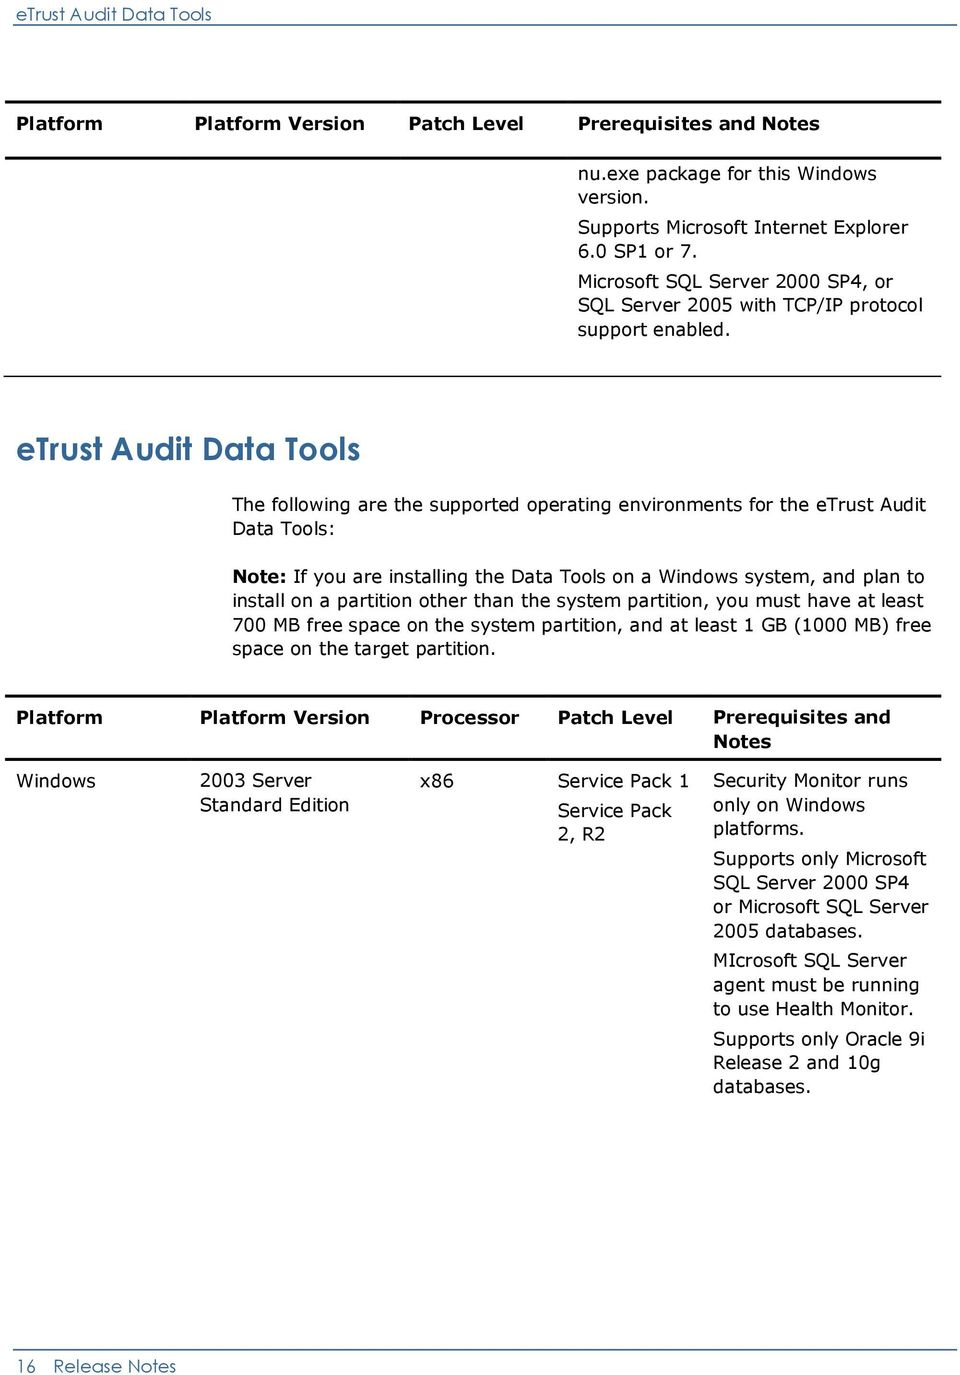 etrust Audit Data Tools The following are the supported operating environments for the etrust Audit Data Tools: Note: If you are installing the Data Tools on a Windows system, and plan to install on